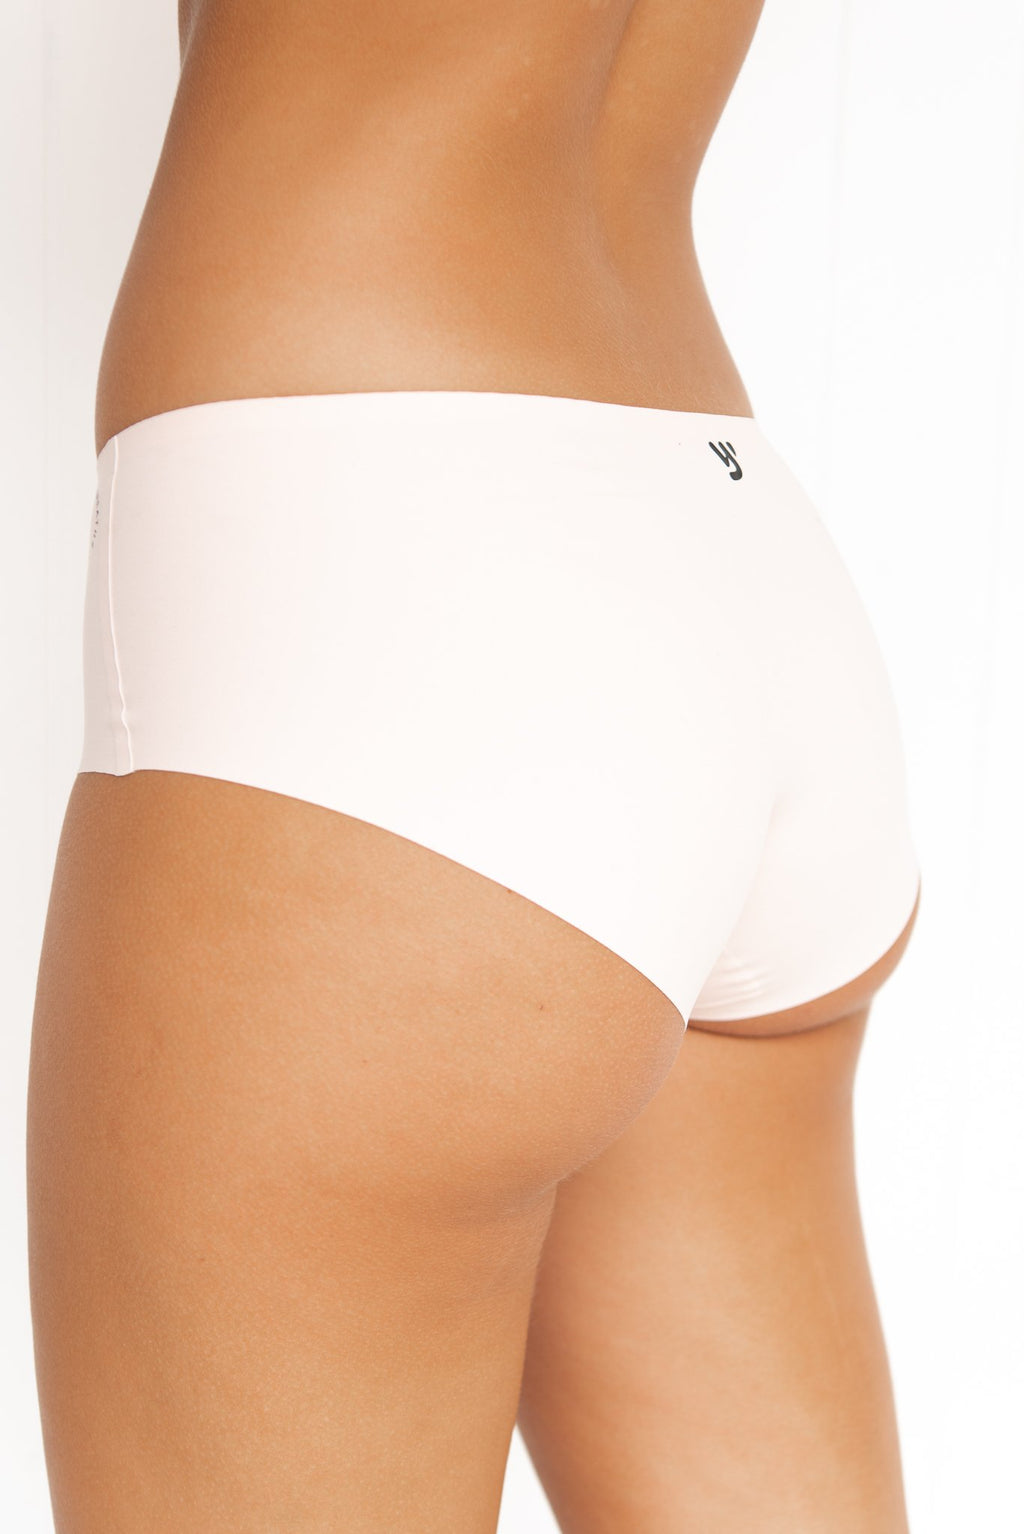 Invisible Active Undies: Buddhi Briefs - Blush Nude - PURE DASH